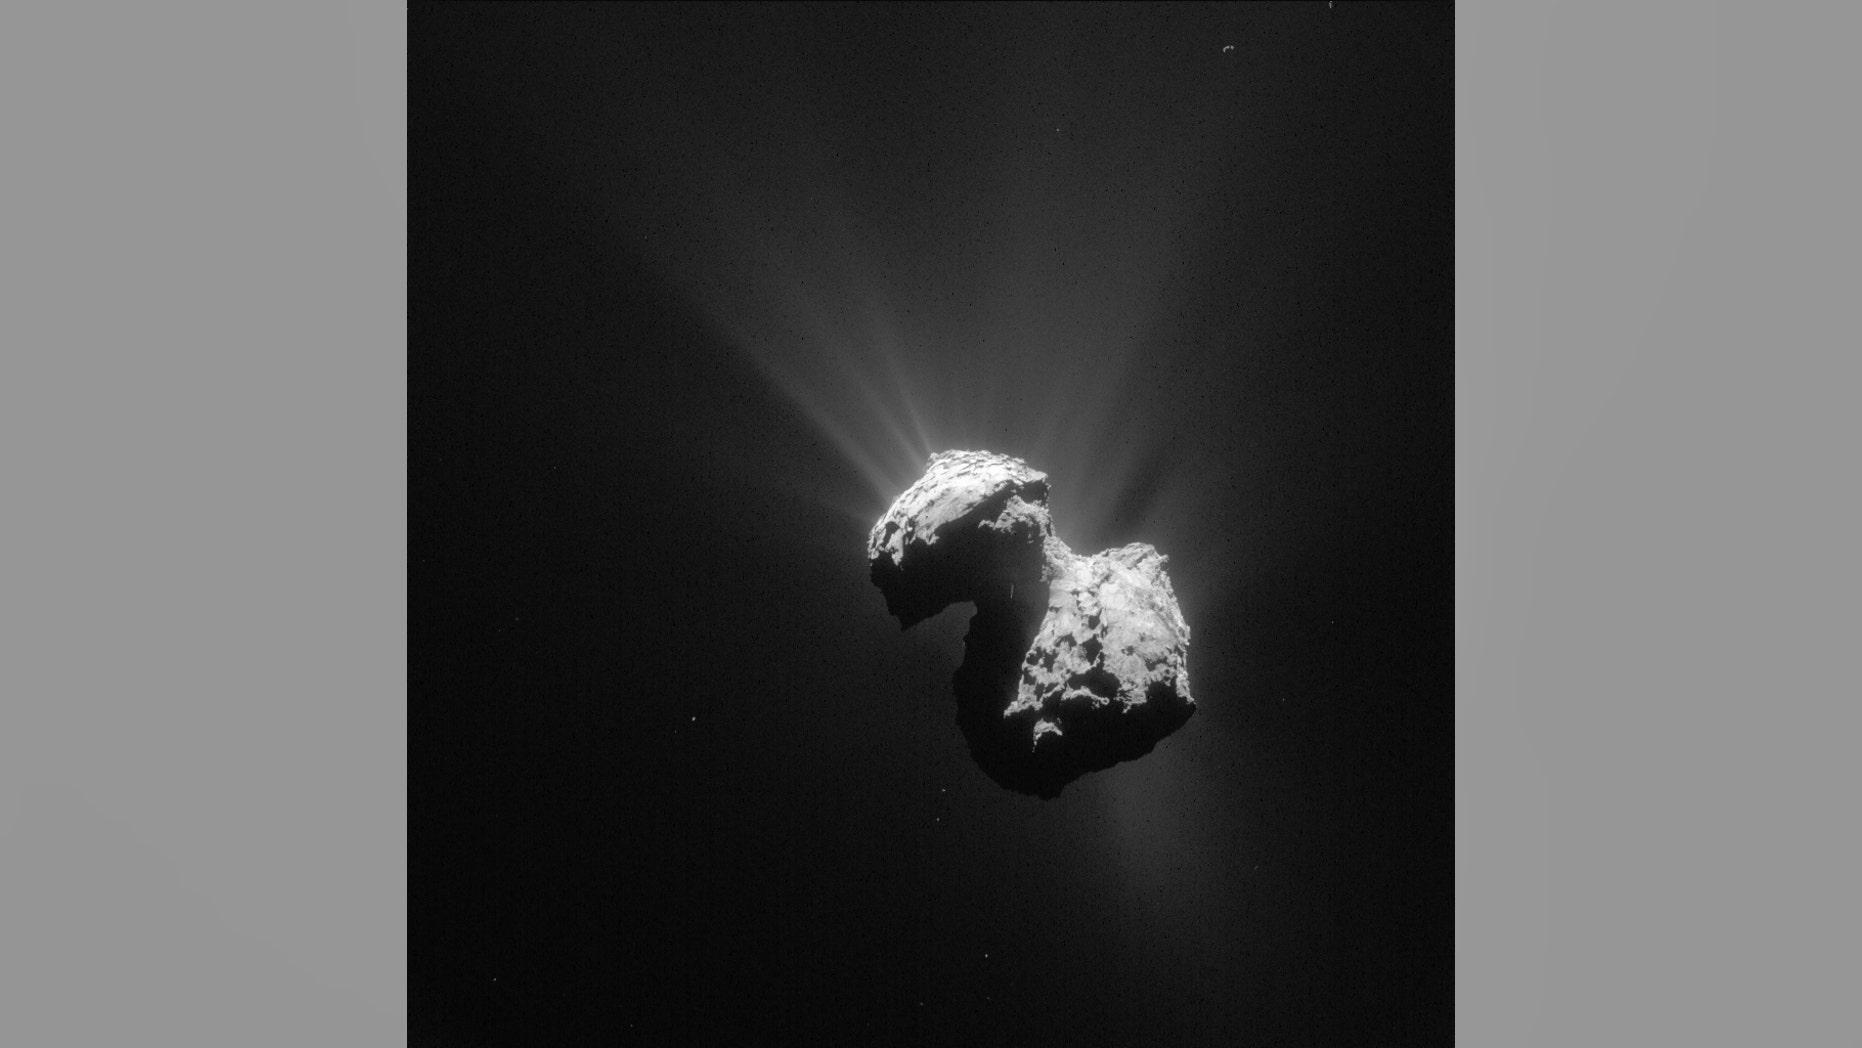 This single frame Rosetta navigation camera image of Comet 67P/Churyumov-Gerasimenko was taken on 7 July 2015 from a distance of 154 km from the comet centre. The image has a resolution of 13.1 m/pixel and measures 13.4 km across.